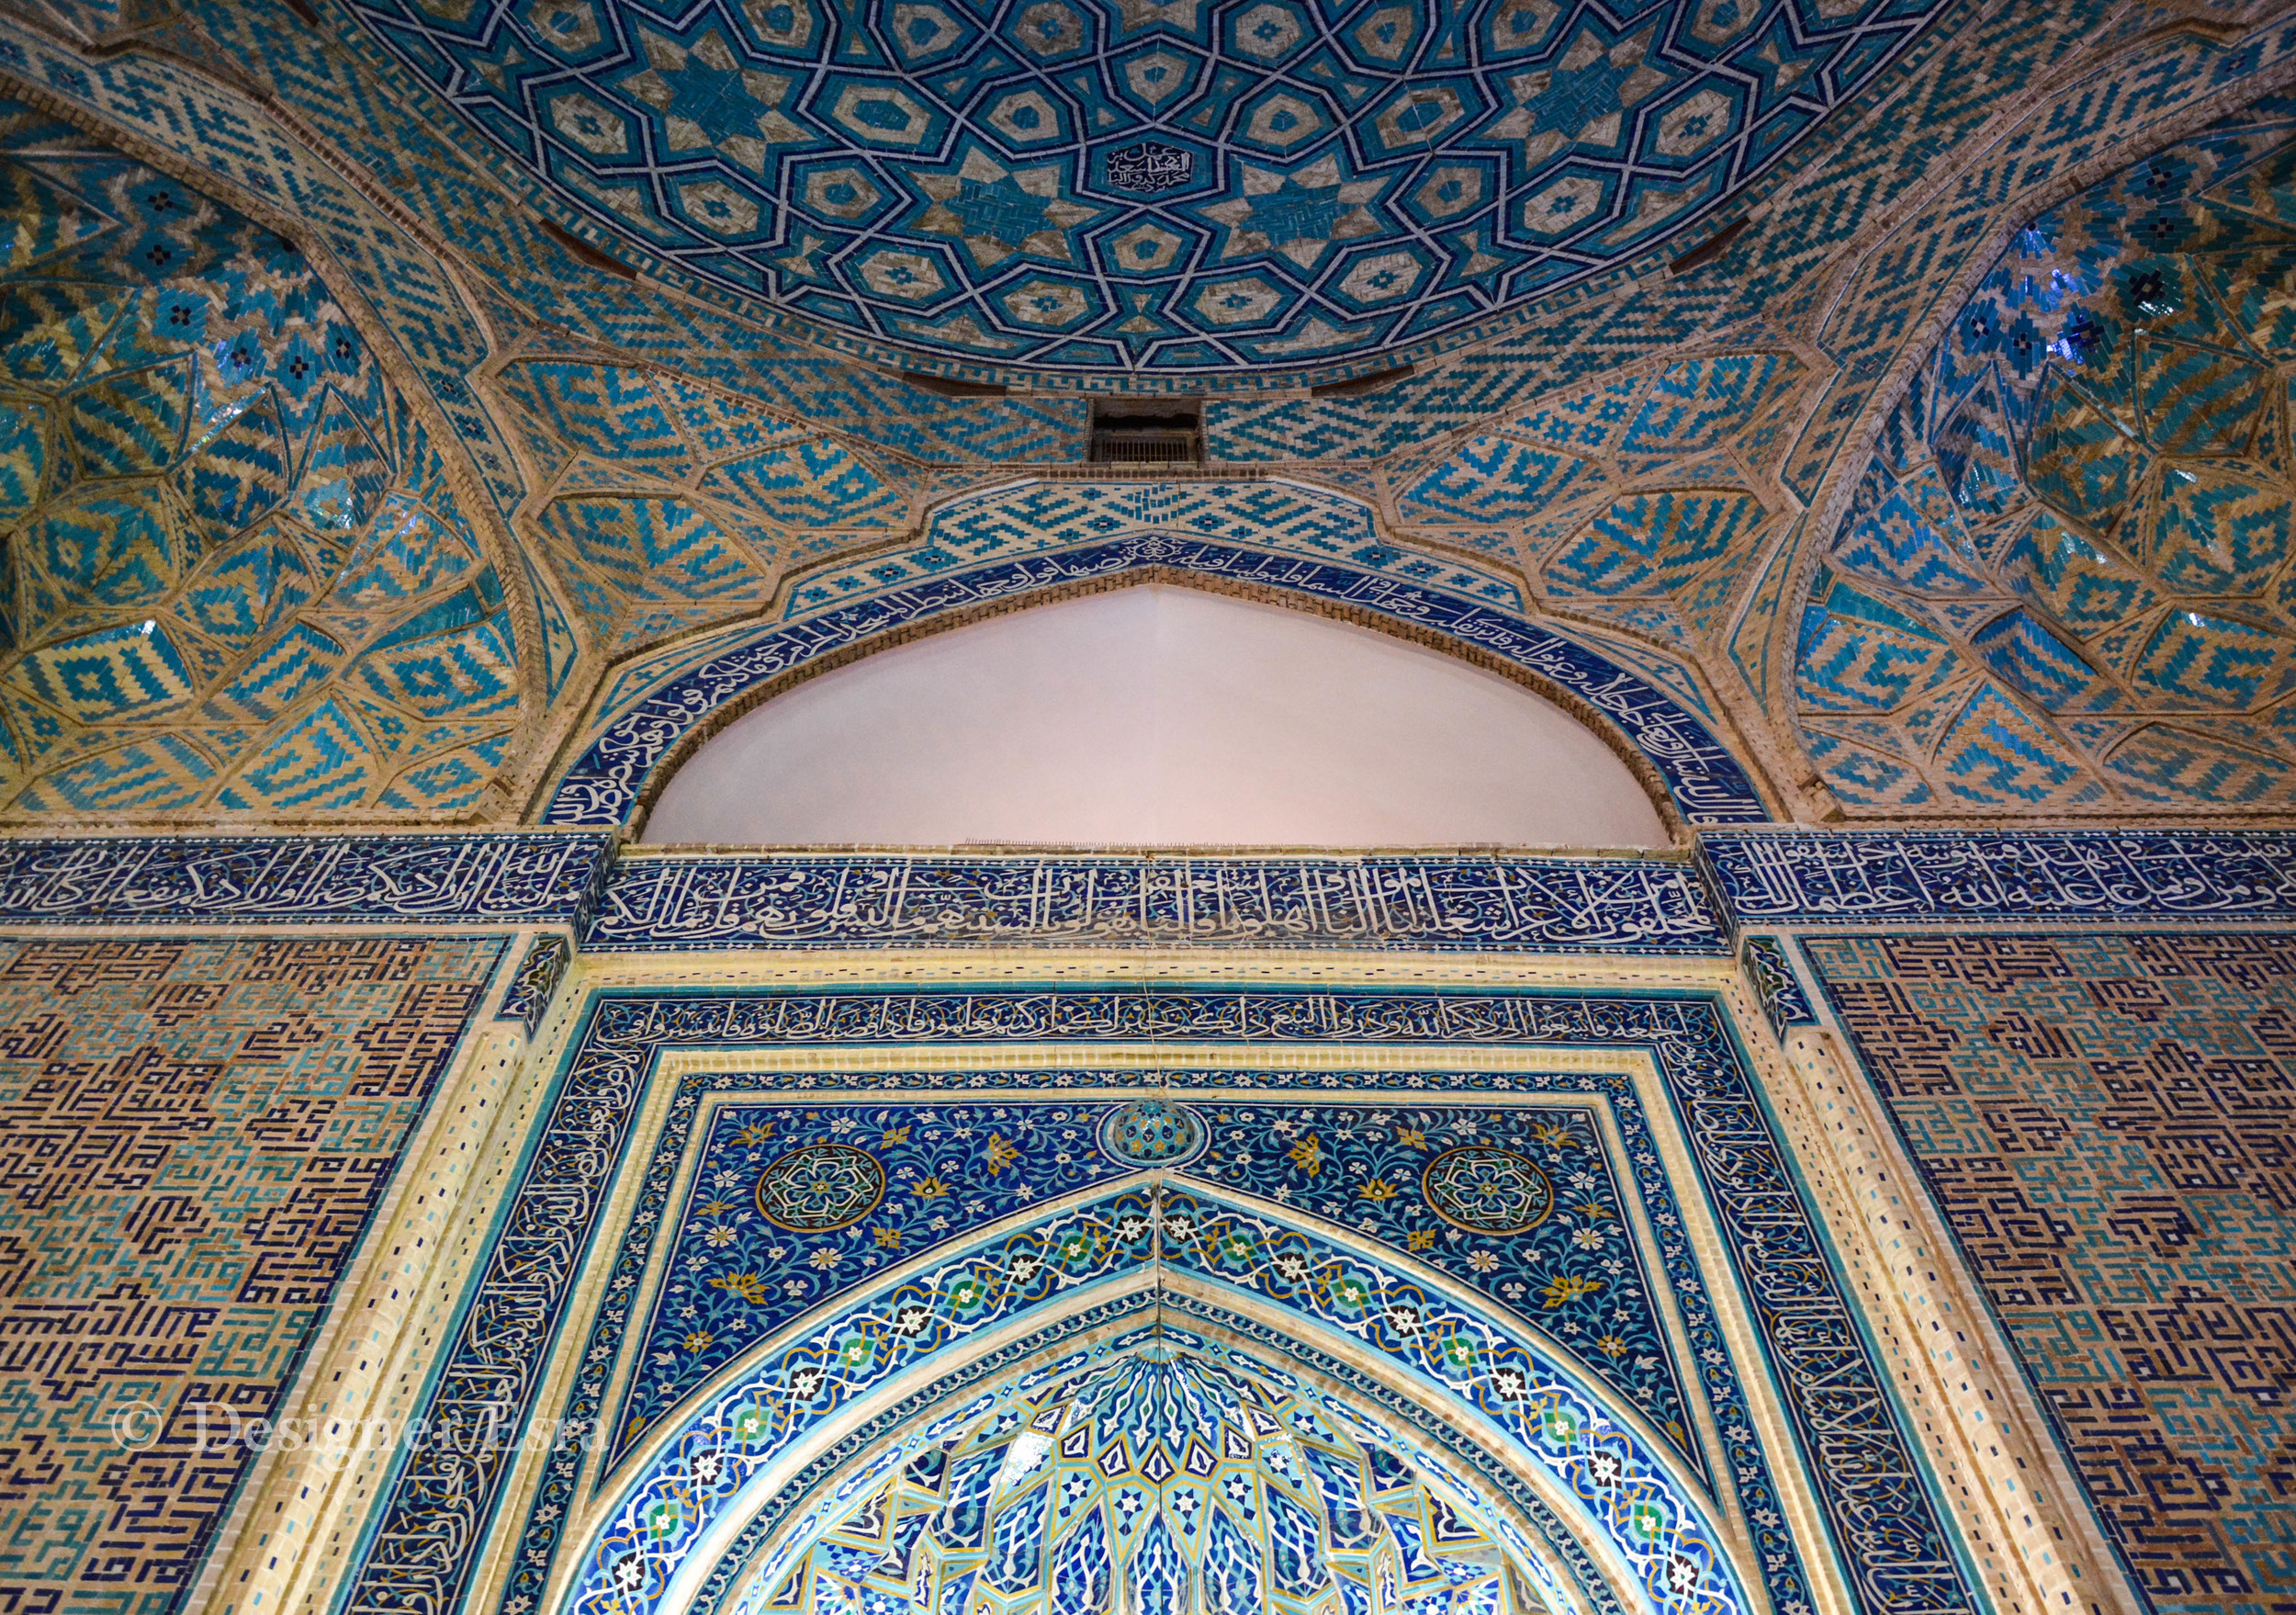 Inside Jame'a / Friday Mosque in Yazd, Iran